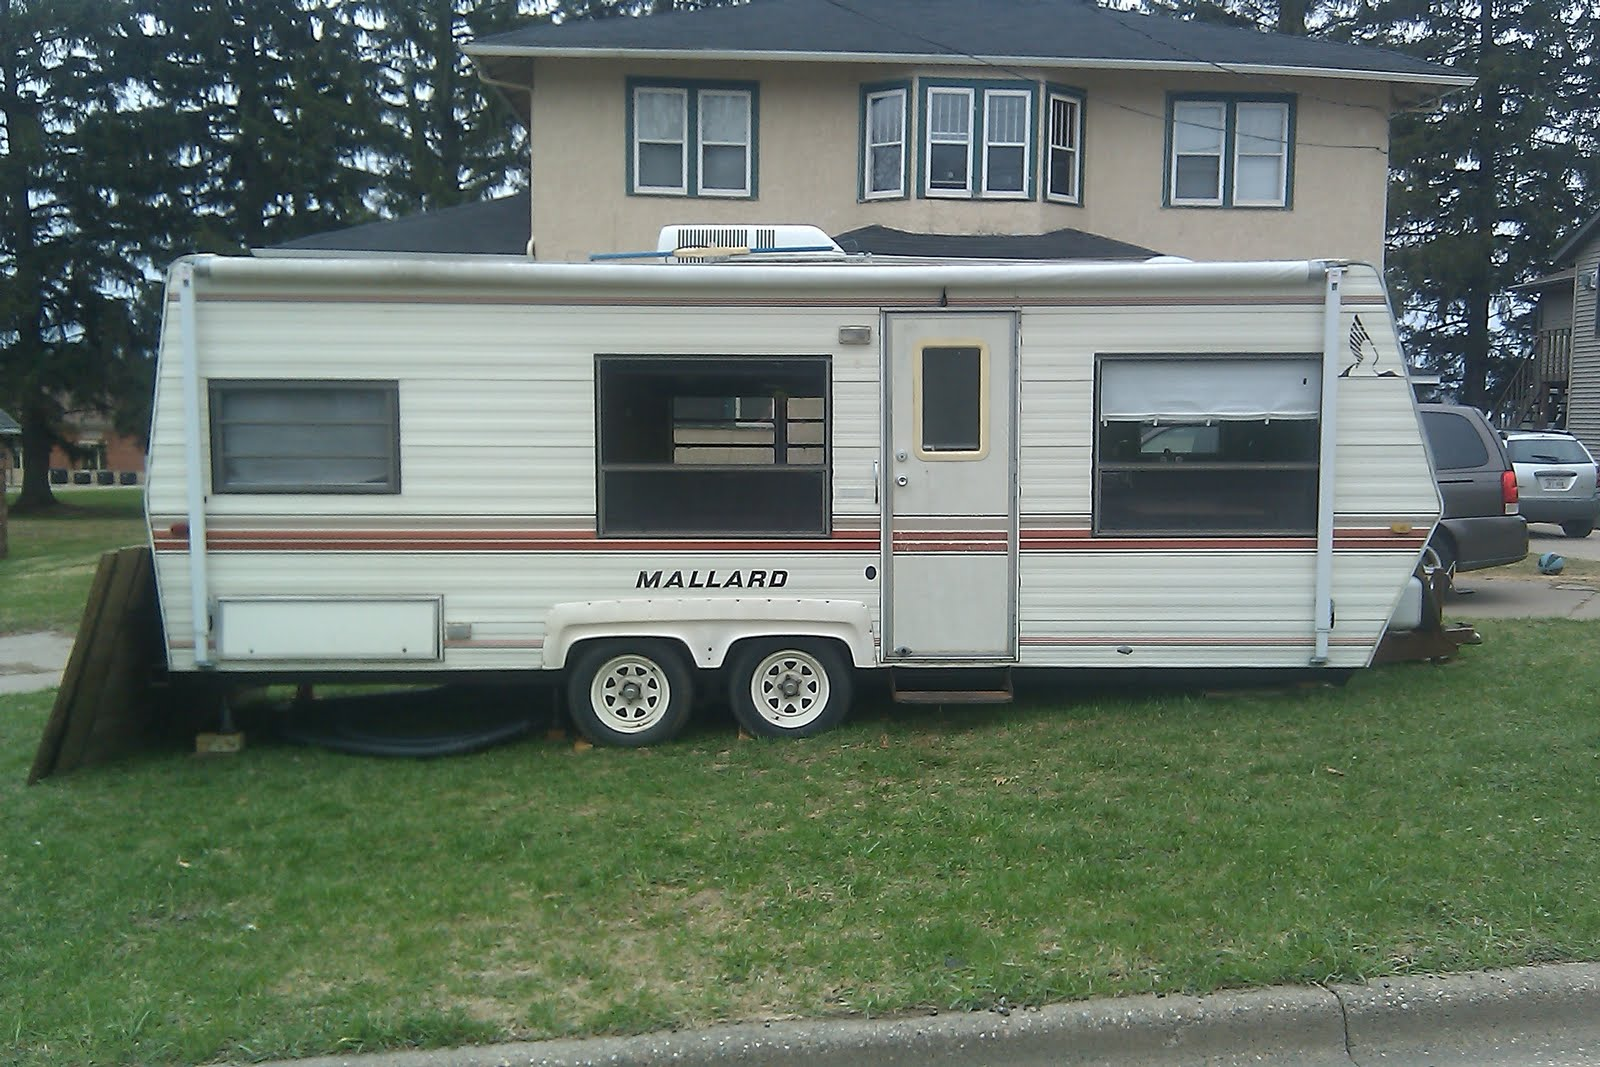 Remodeling Our 85 Mallard Camper Remodeling Our 85